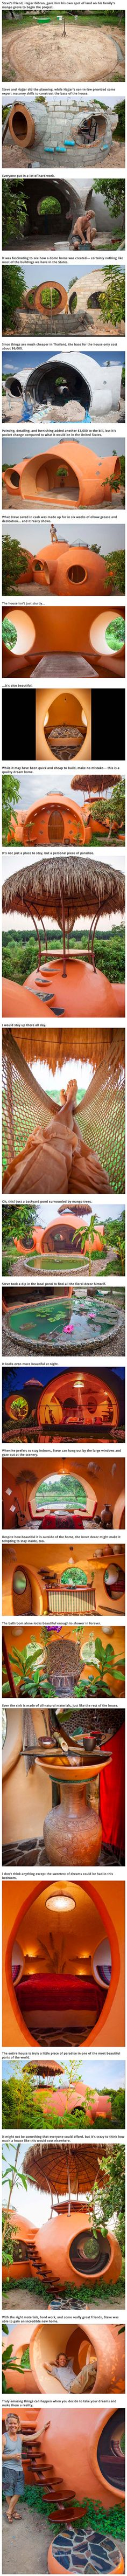 Geek Turns Mound of Dirt Into an Awesome Pod-Shaped Home for just $9,000 - TechEBlog It's almost earthbag/cob/earthship but it can look like this!